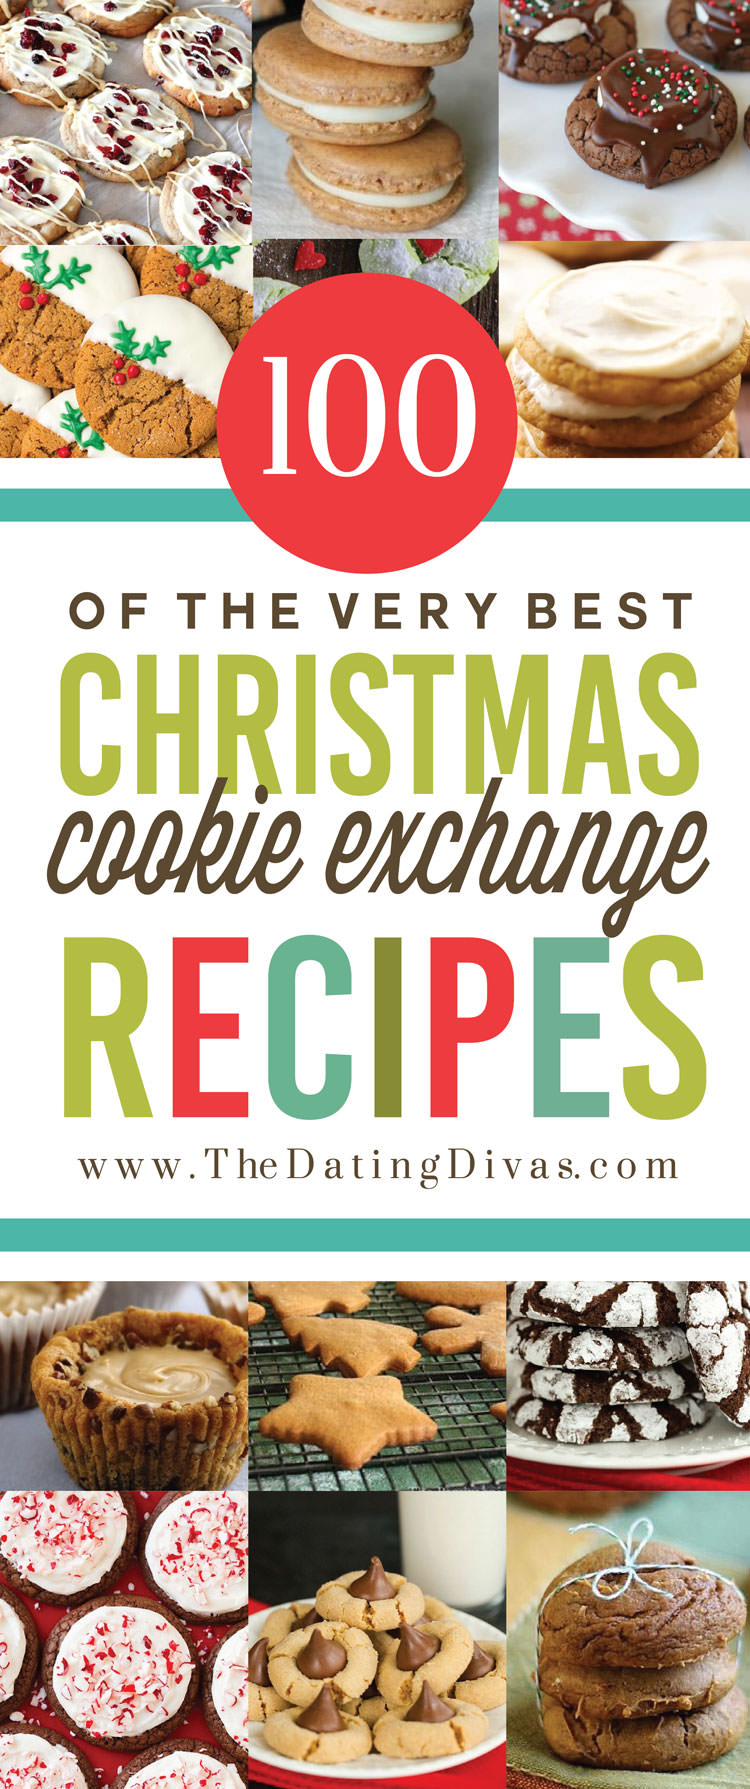 Find out some of best christmas cookie recipes here!